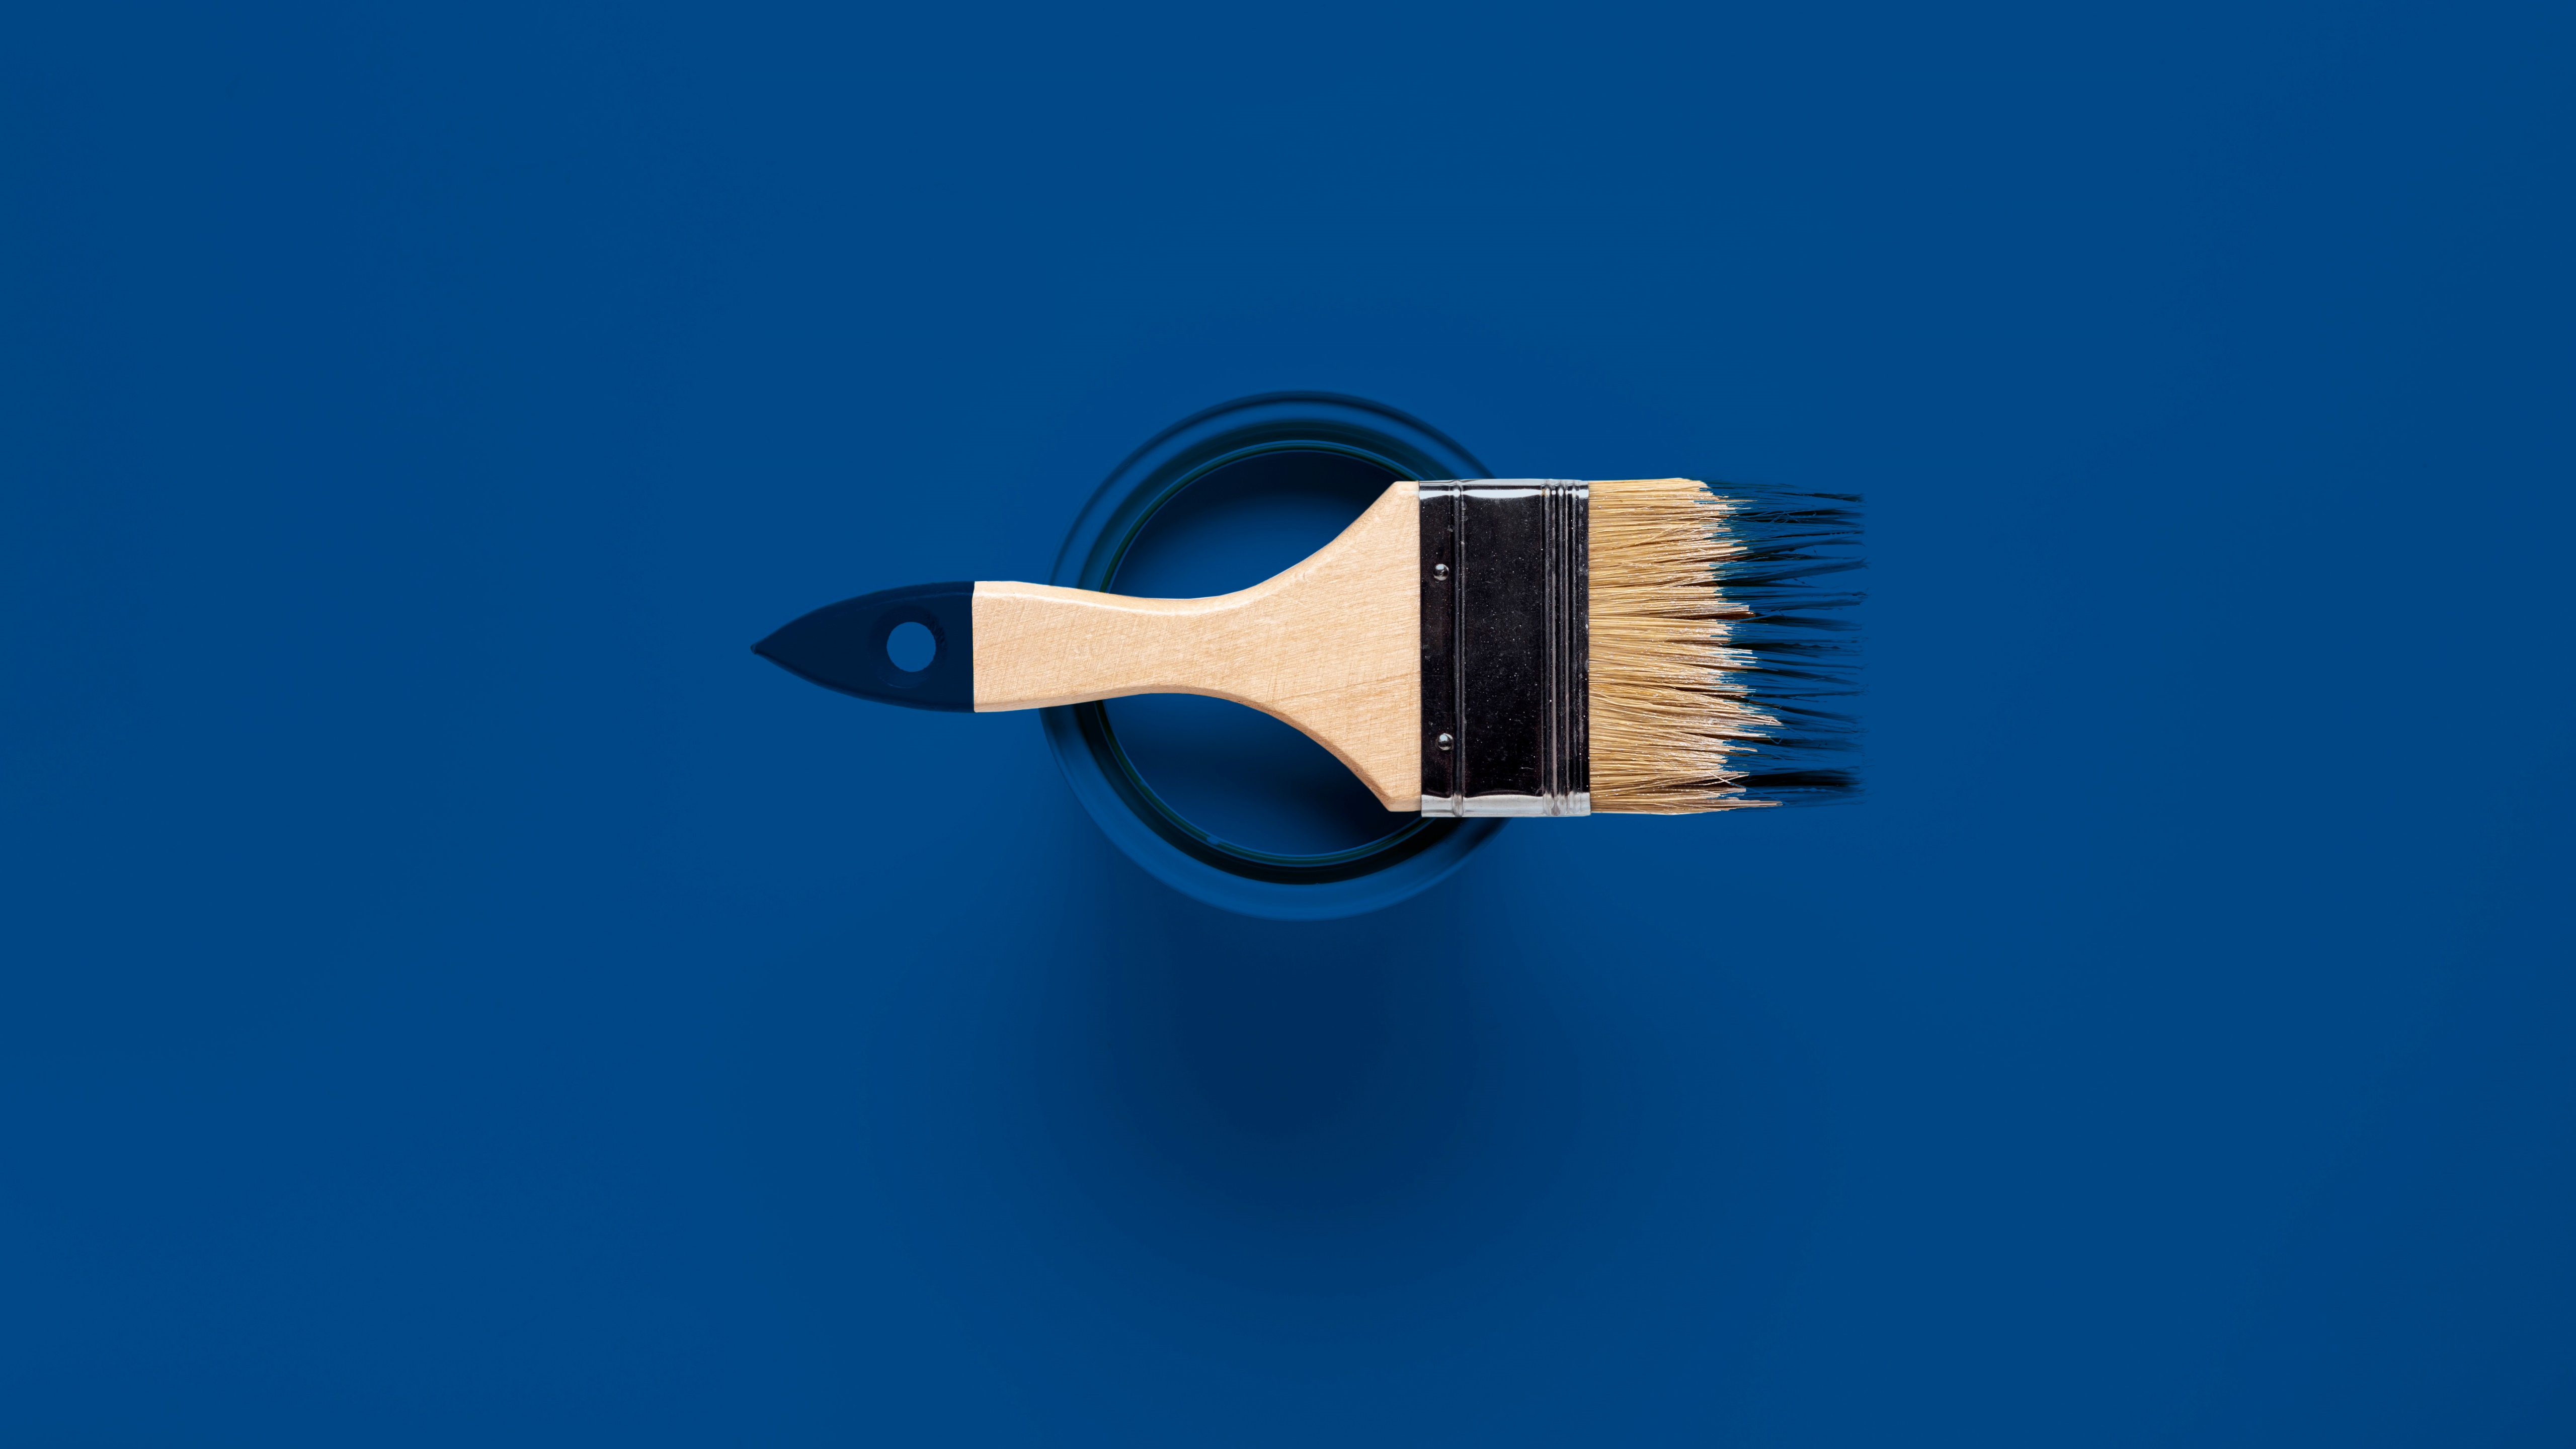 top view of brush and paint can wallpaper